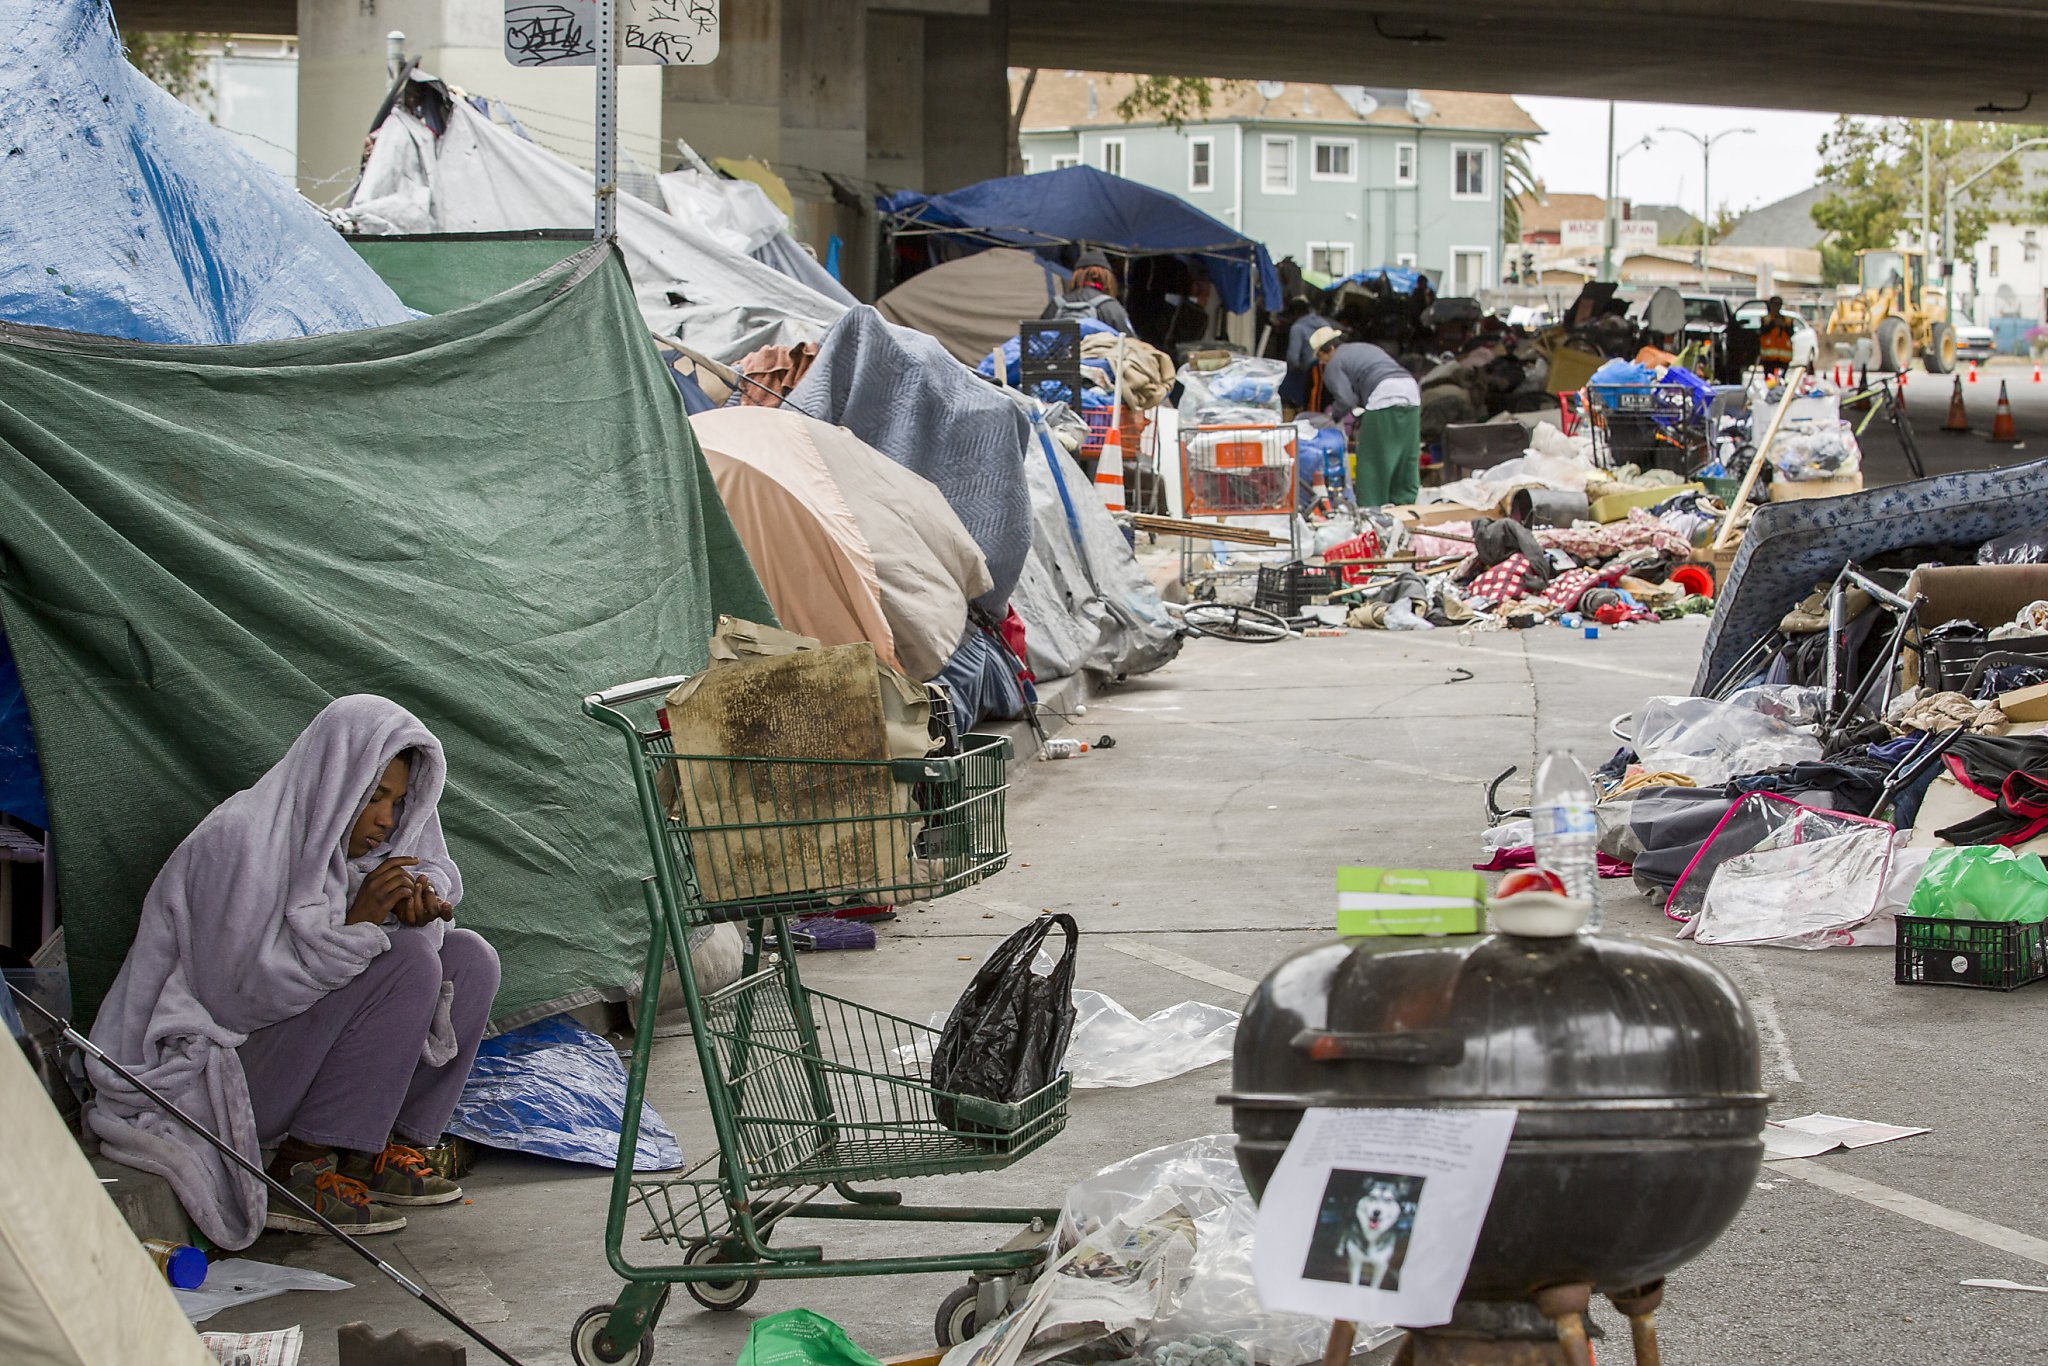 California continues to have the highest poverty level in the nation